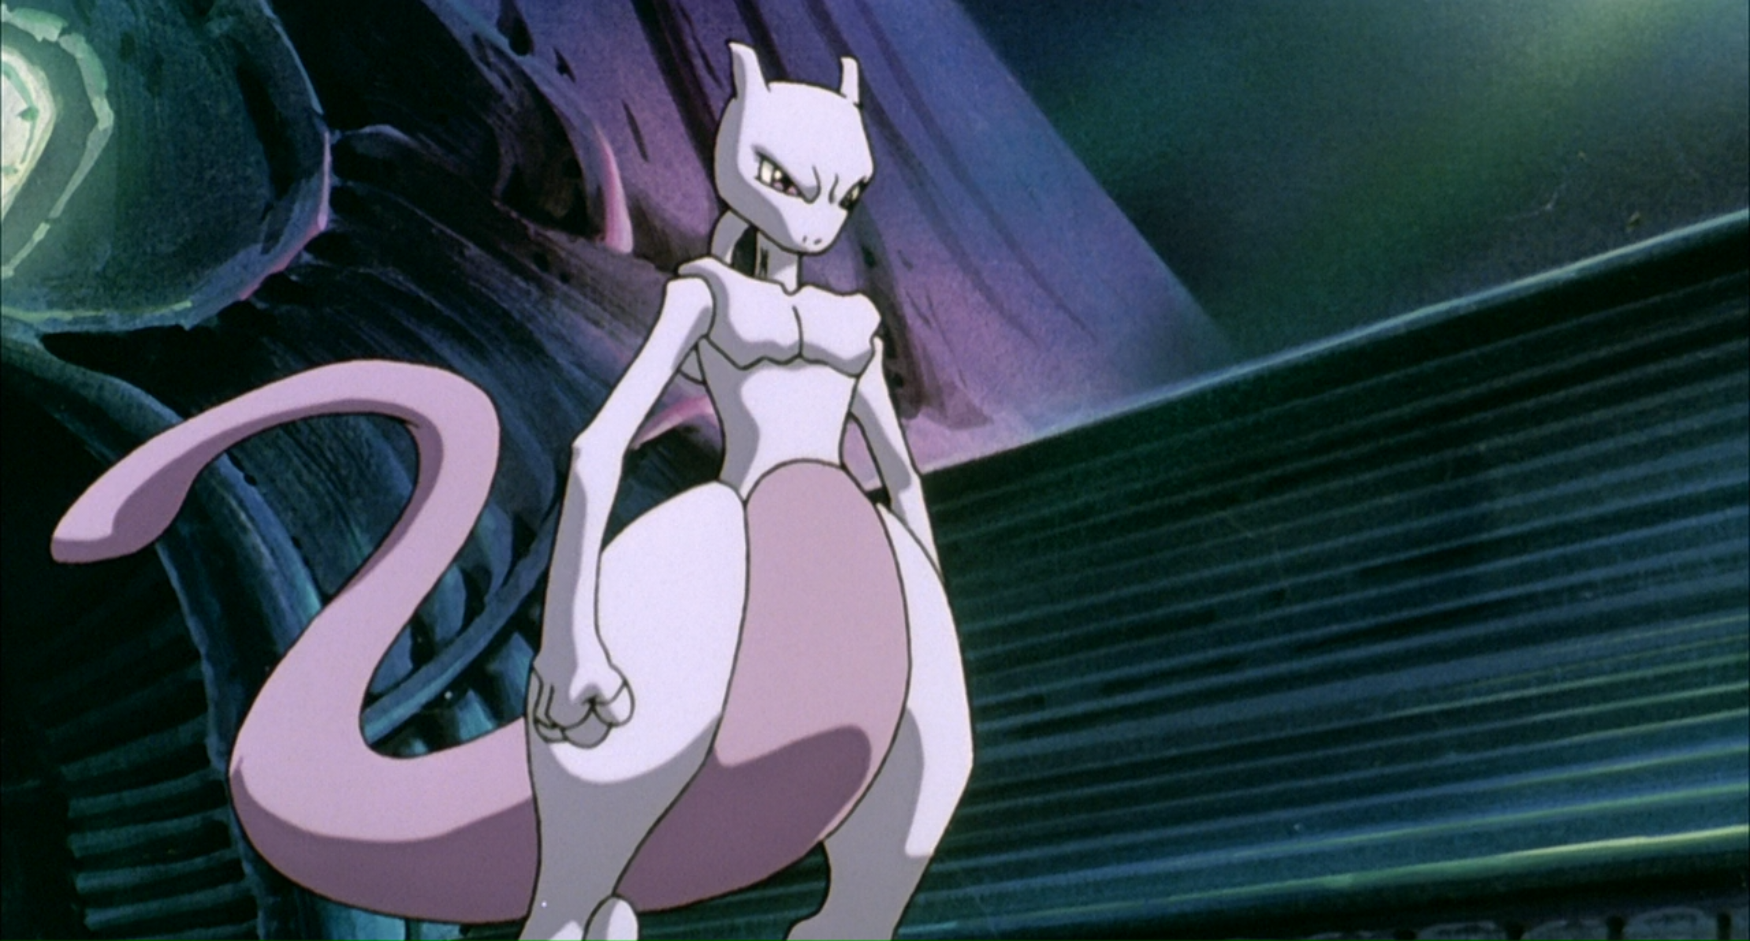 Mewtwo Shows Up in Pokemon Go; New 'Exclusive Raids' Confirmed